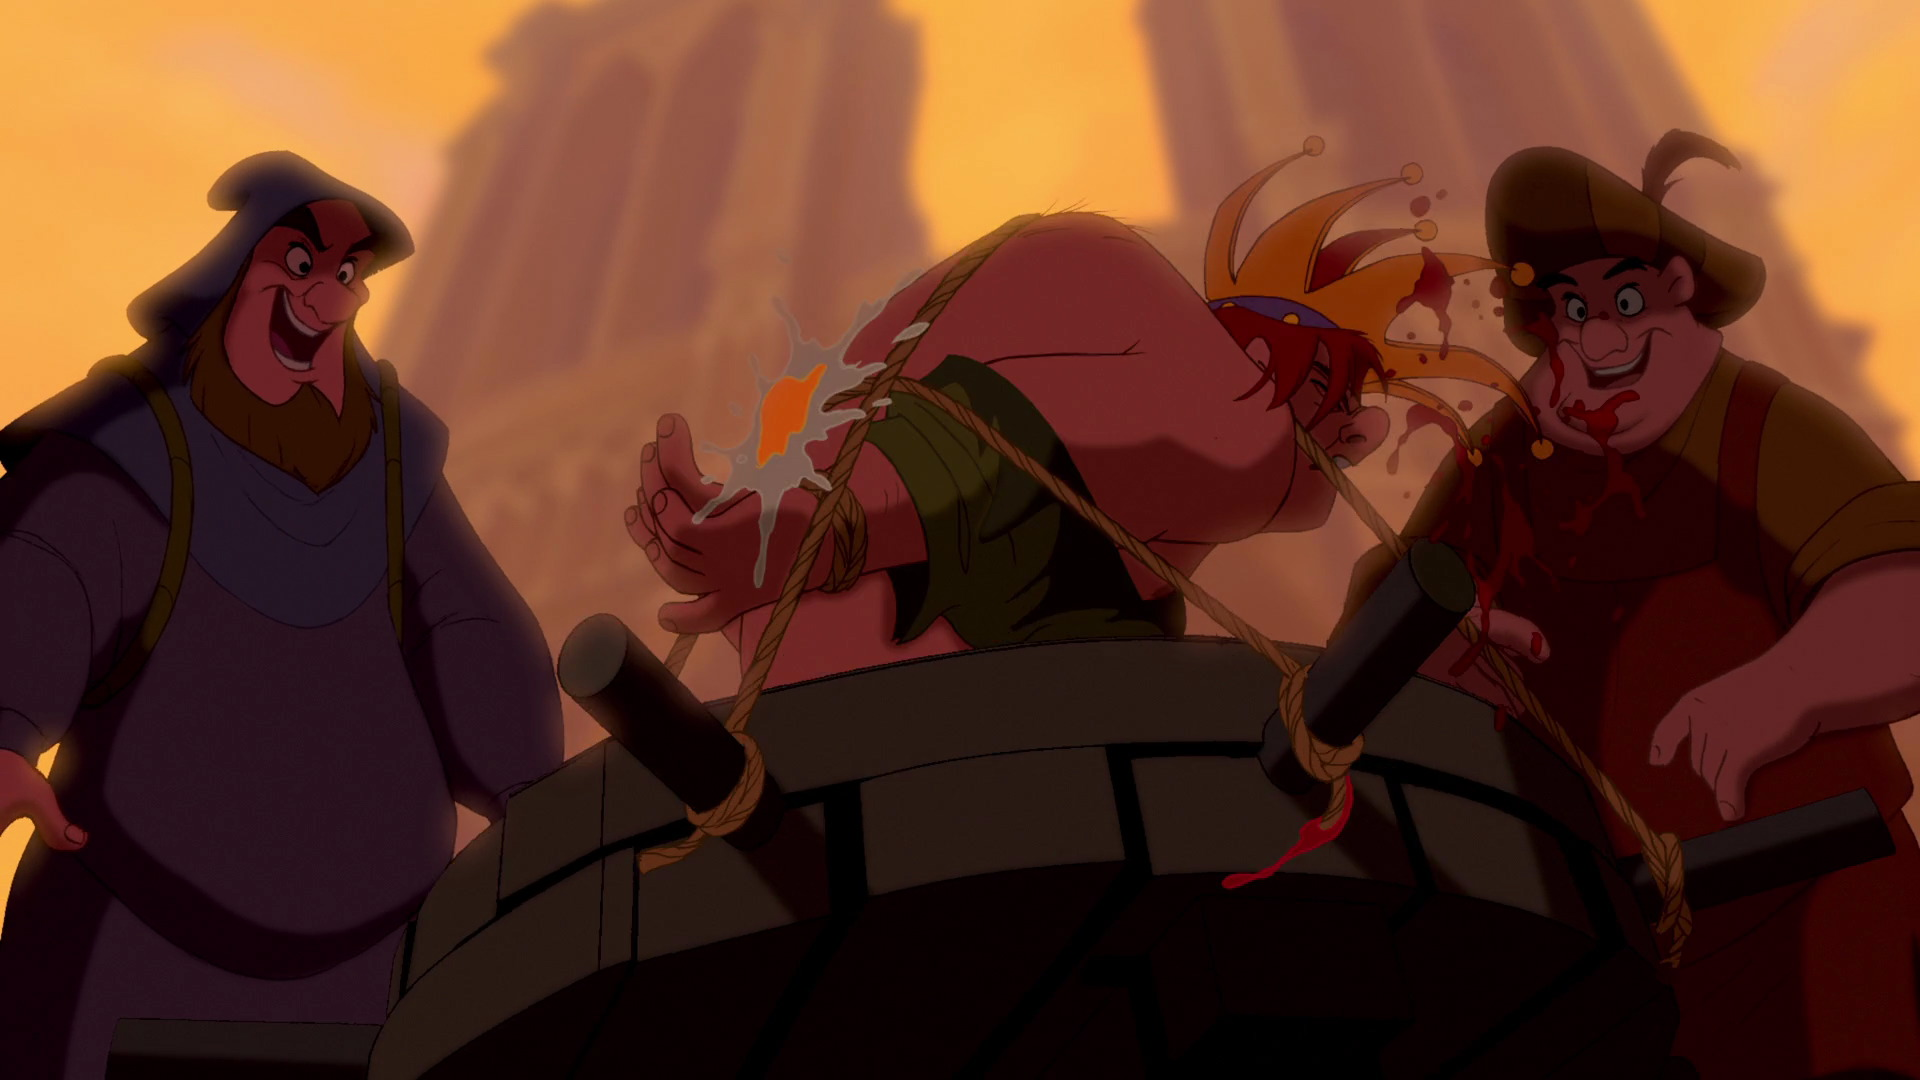 betrayal in the hunchback of notre The hunchback of notre dame related: disney esmeralda beauty and the beast quasimodo tangled disney esmeralda beauty and the beast quasimodo tangled.